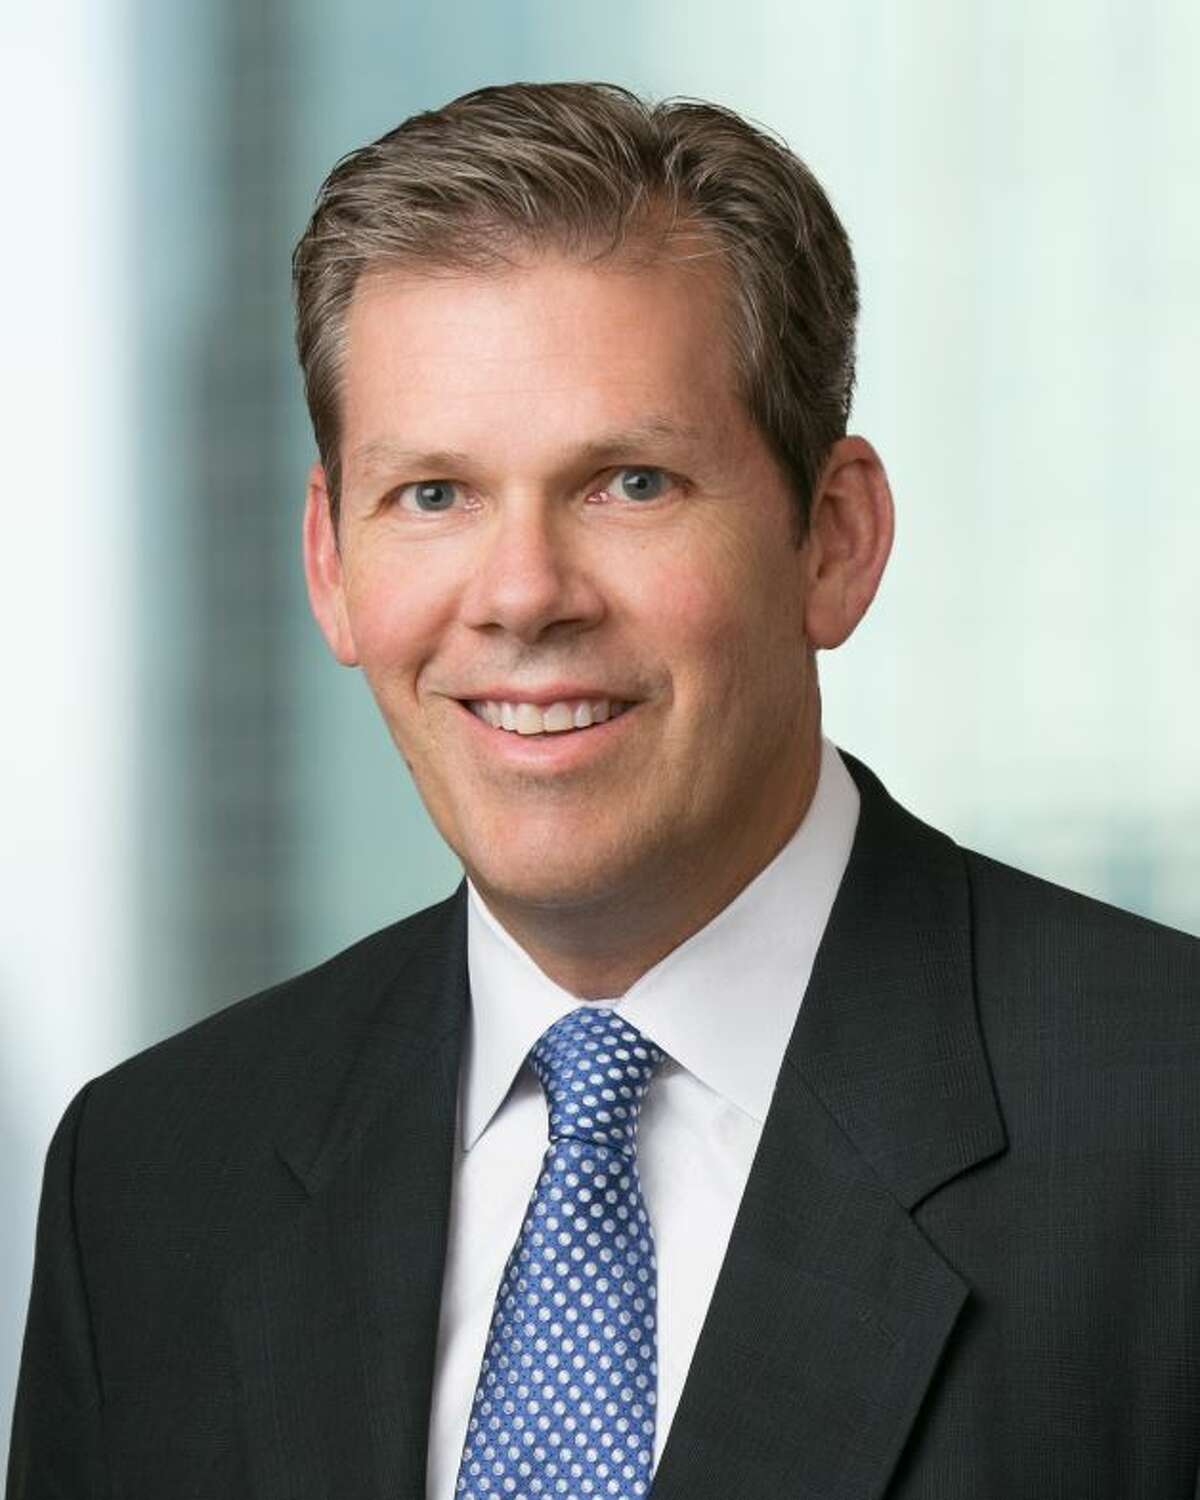 James C. Fish, Jr., is the new CEO of Houston-based global disposal and recycling company Waste Management.